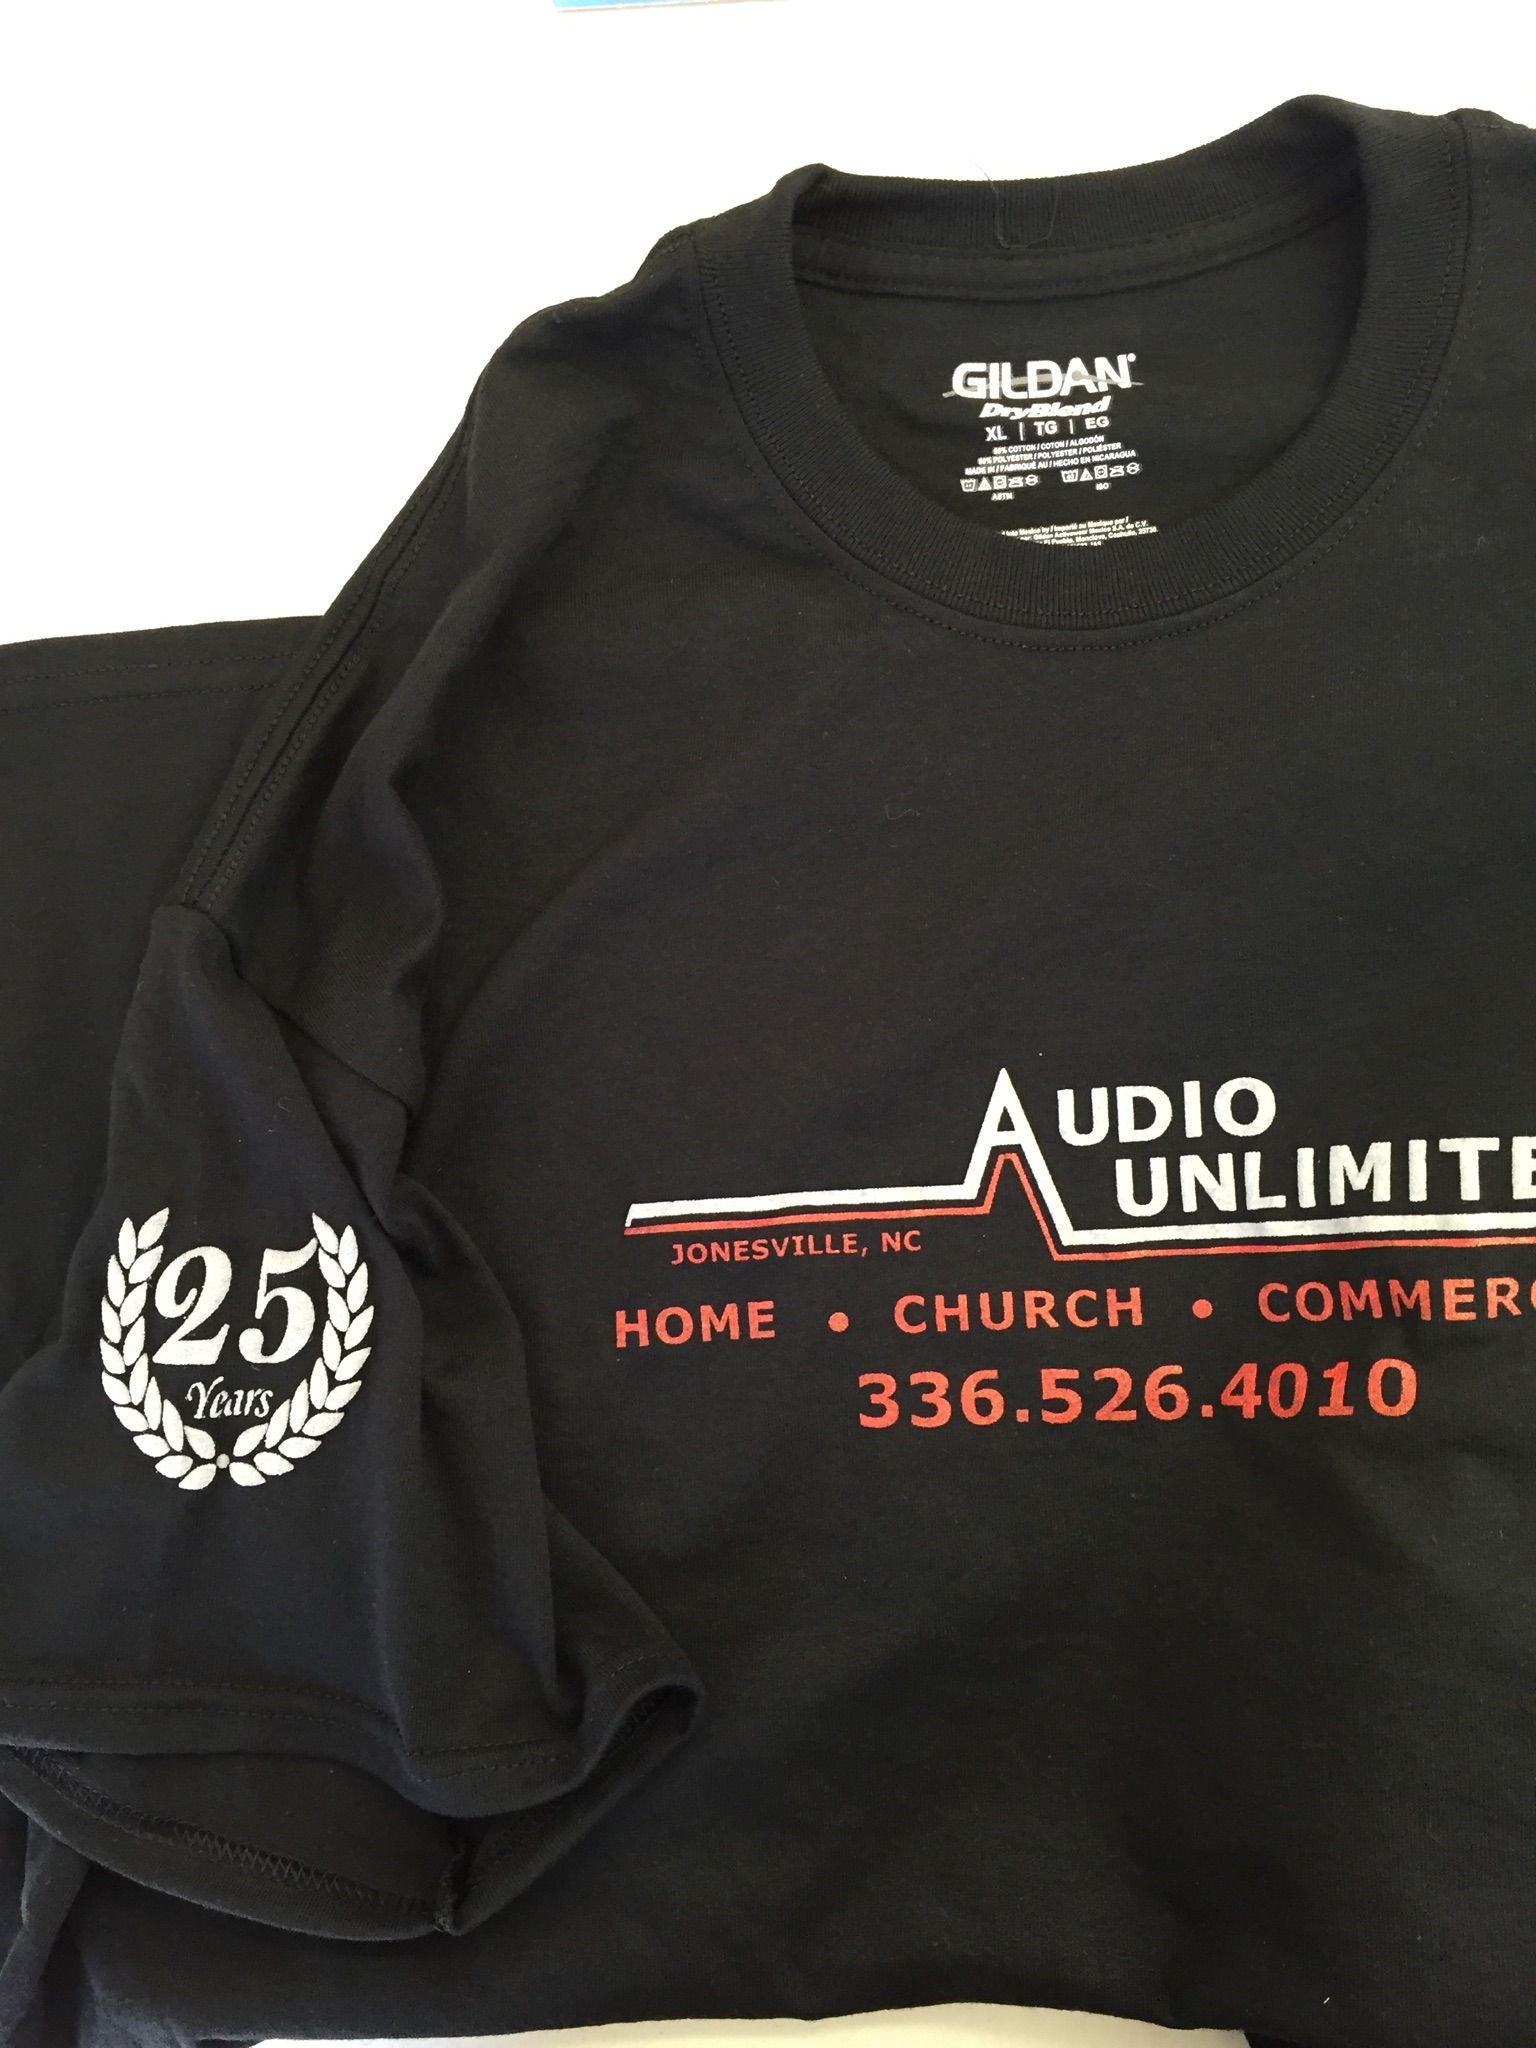 Audio Unlimited